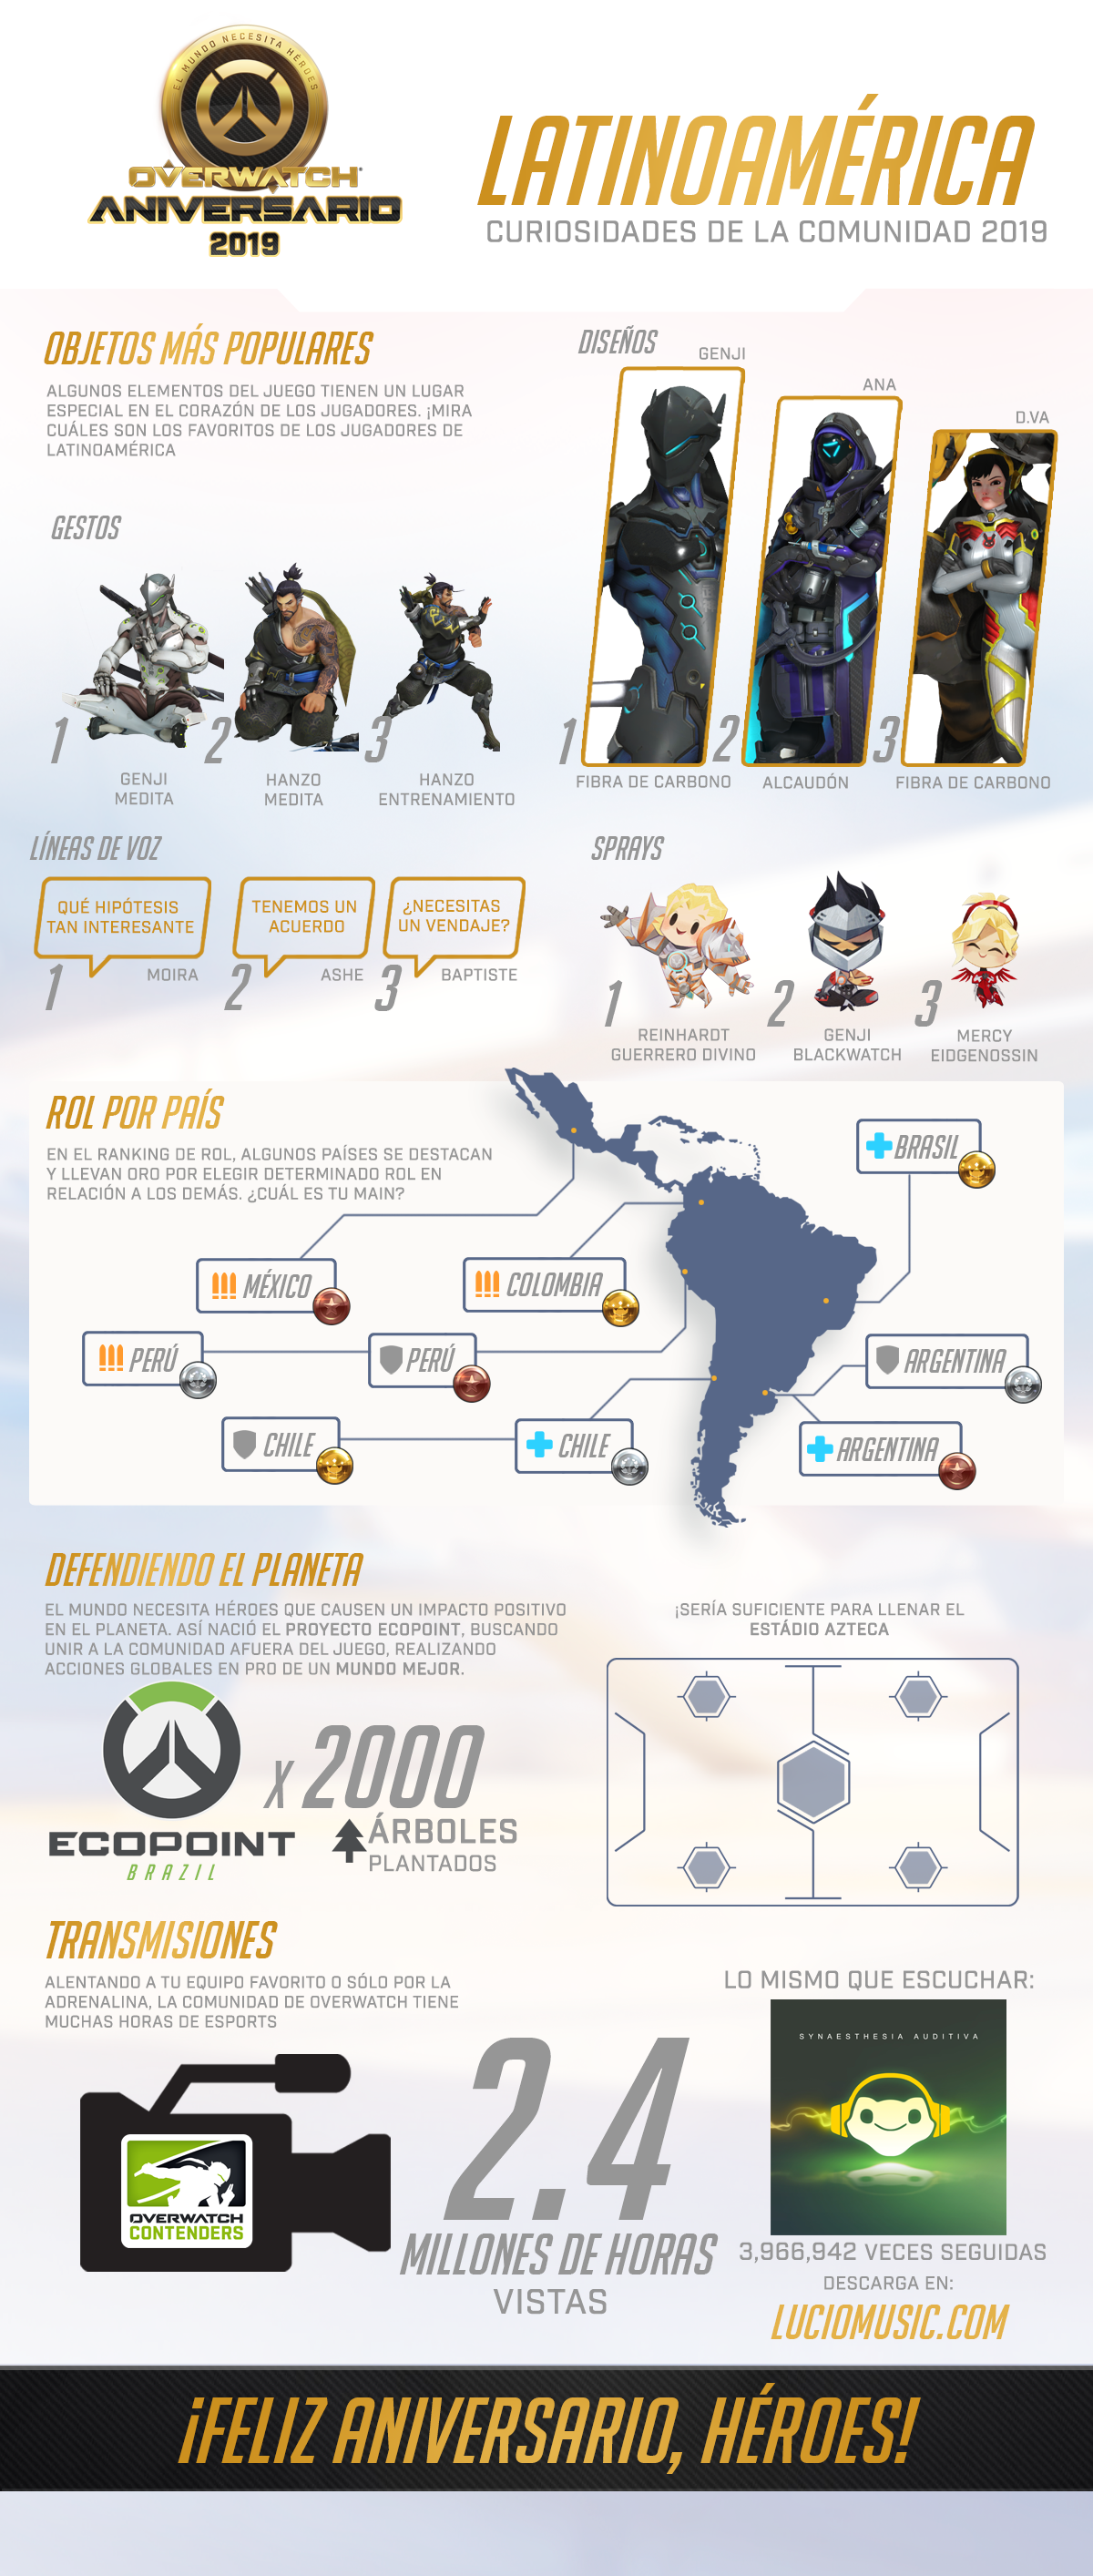 Anniversary2019-Infographic_OW_simplified - SSA.png